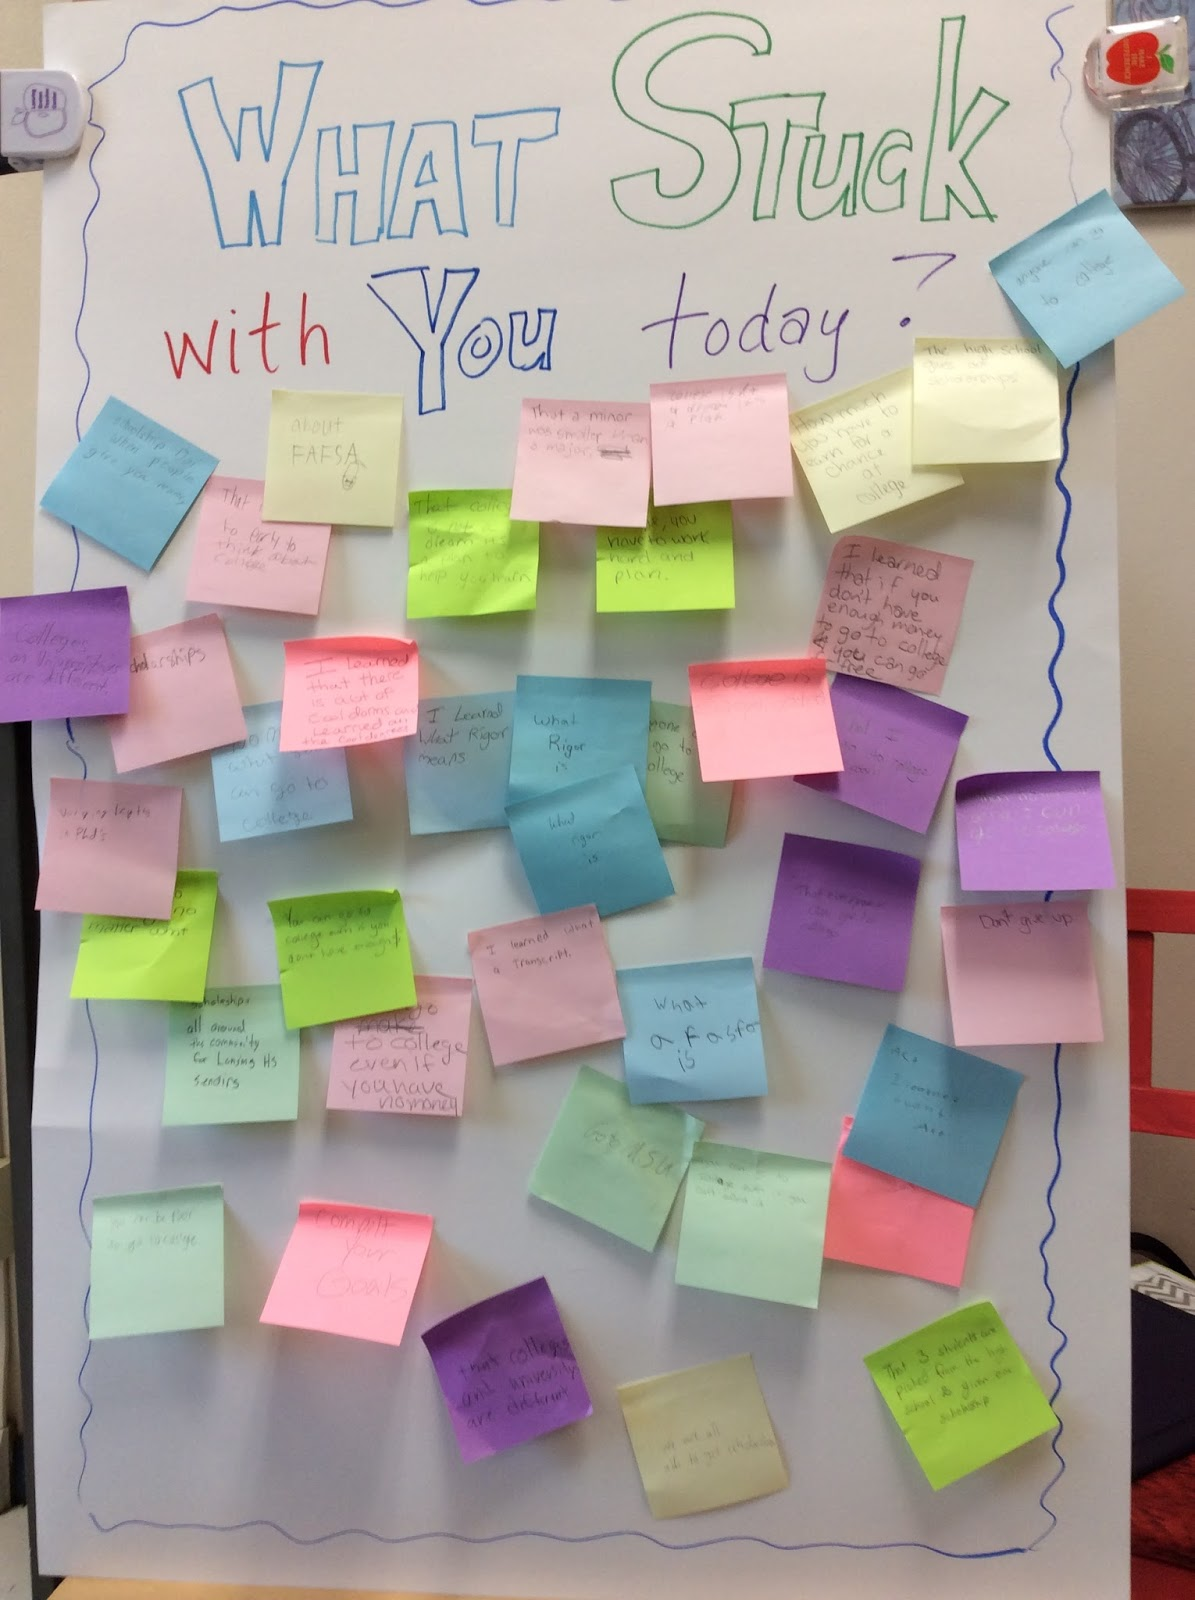 How Post It Notes Can Change School Climate